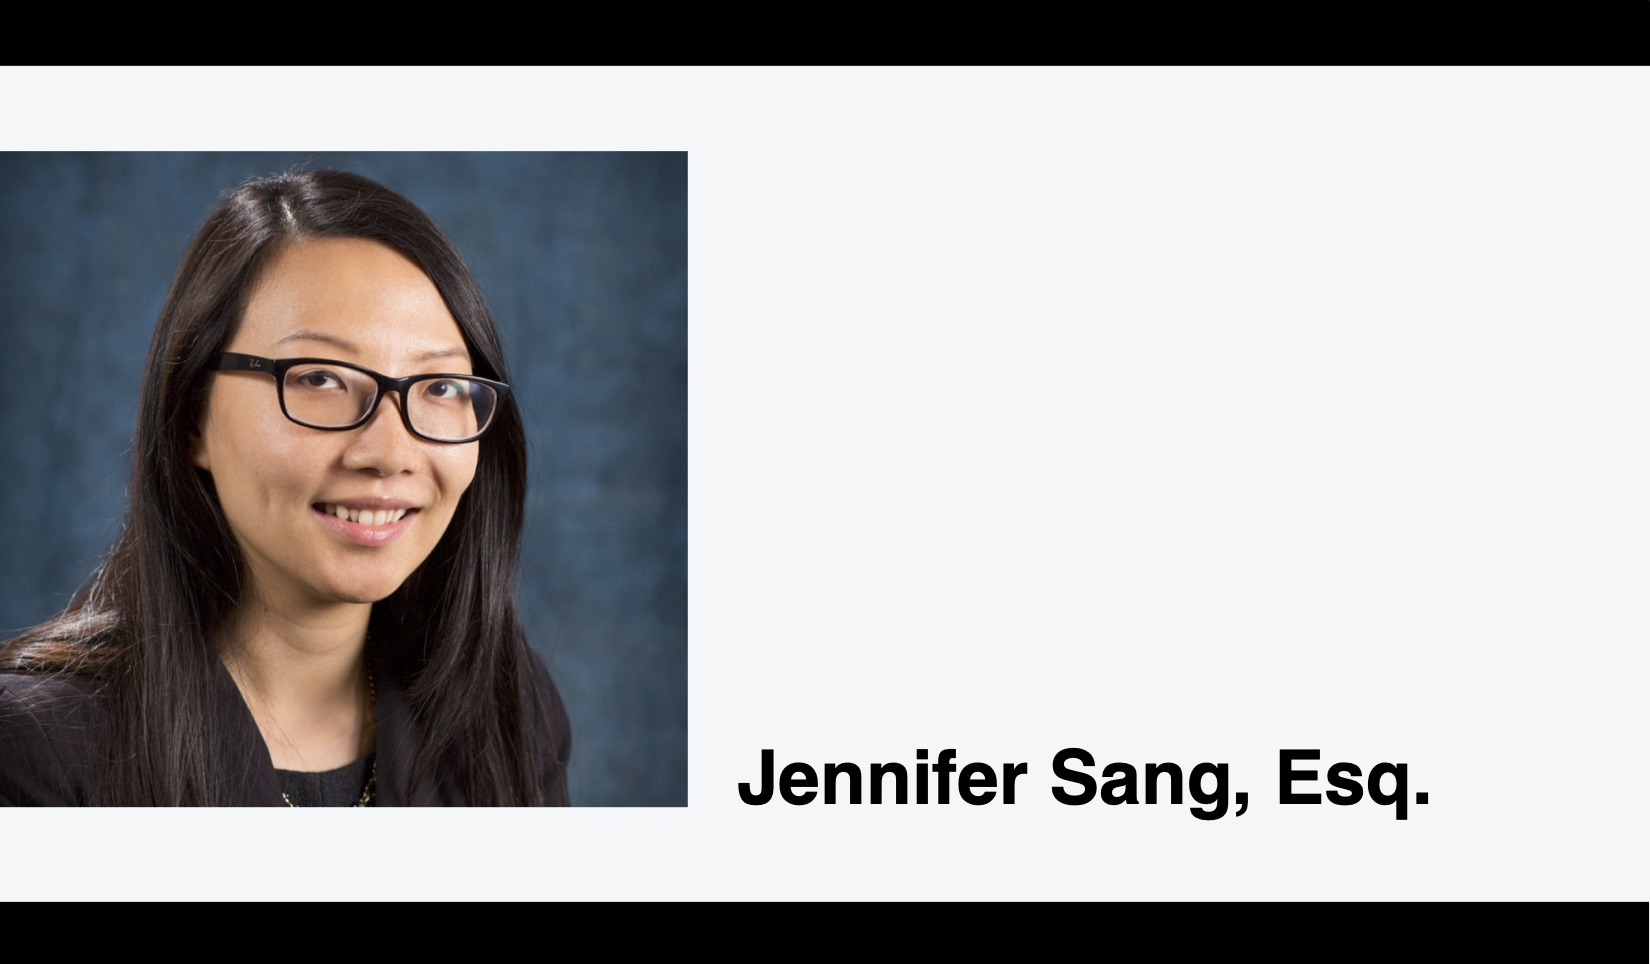 Headshot of Jen Sang, Esq.